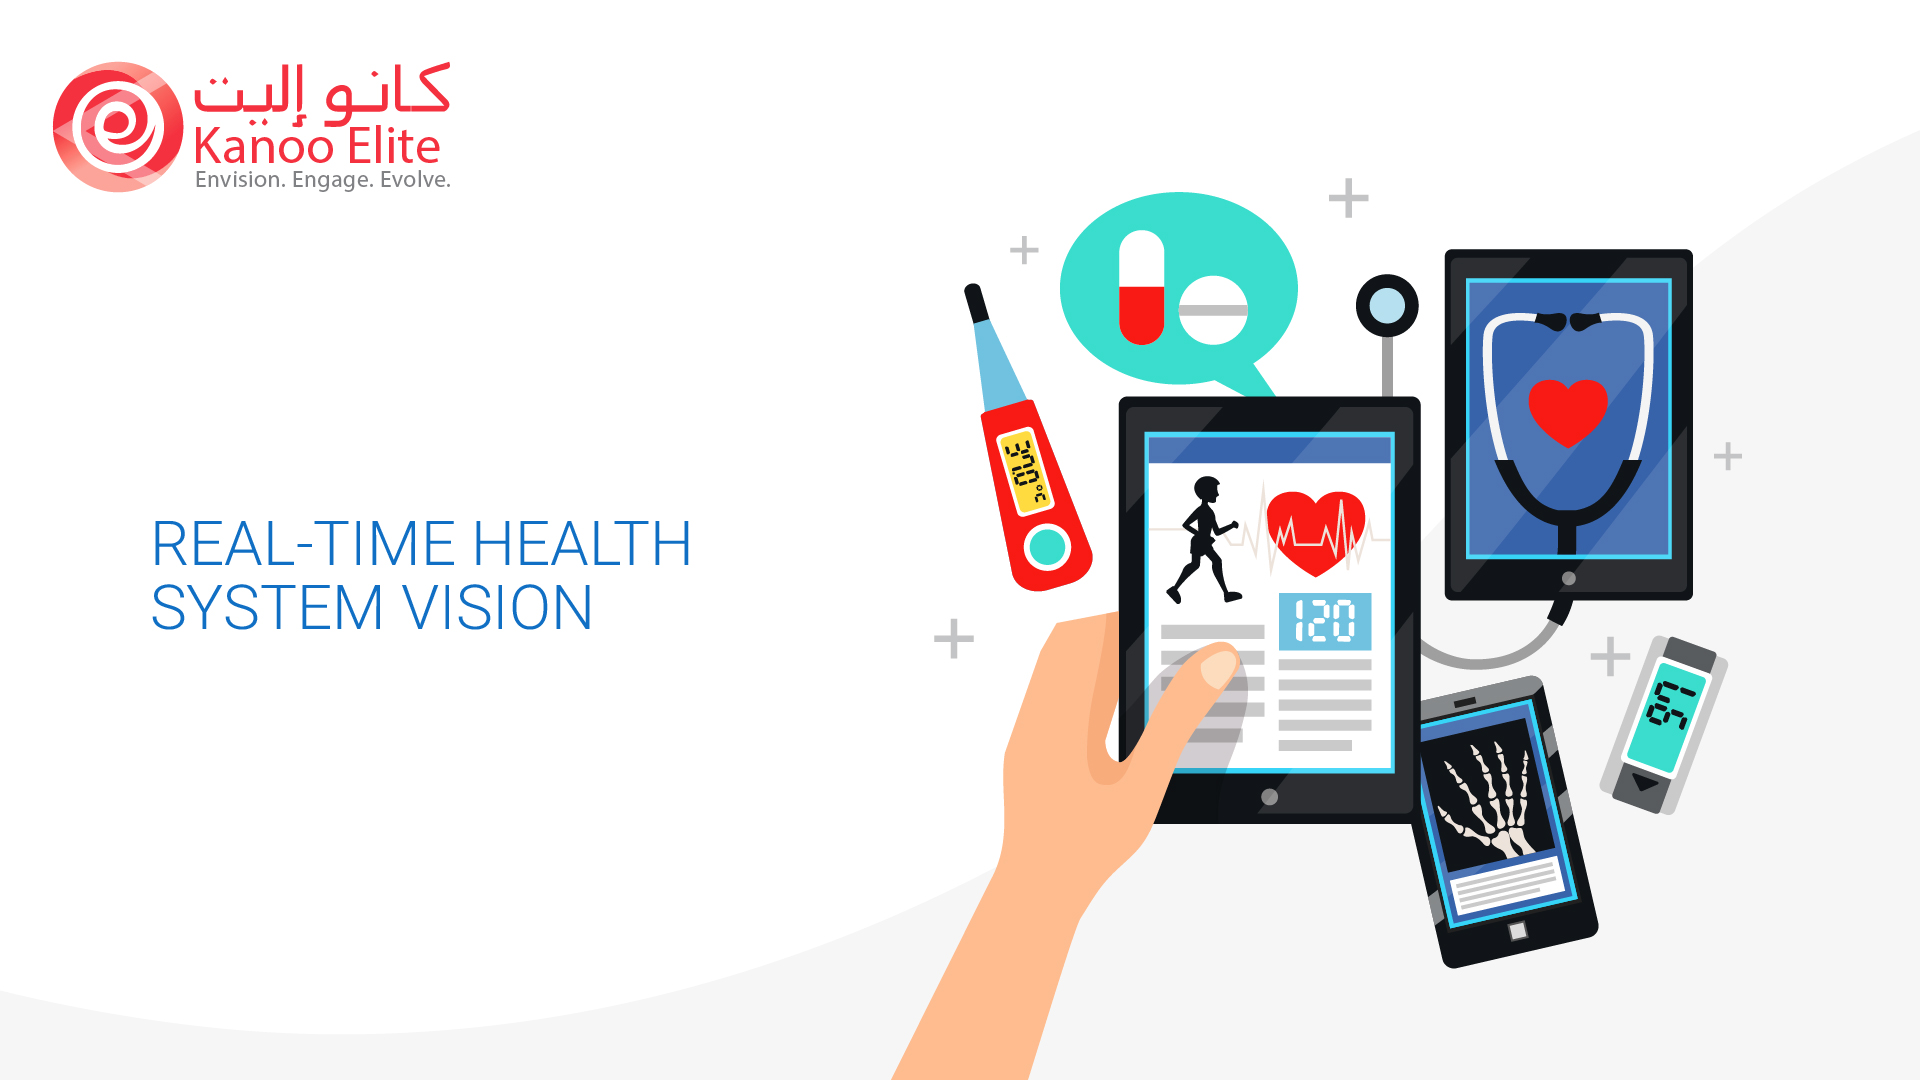 Real-Time Health System Vision